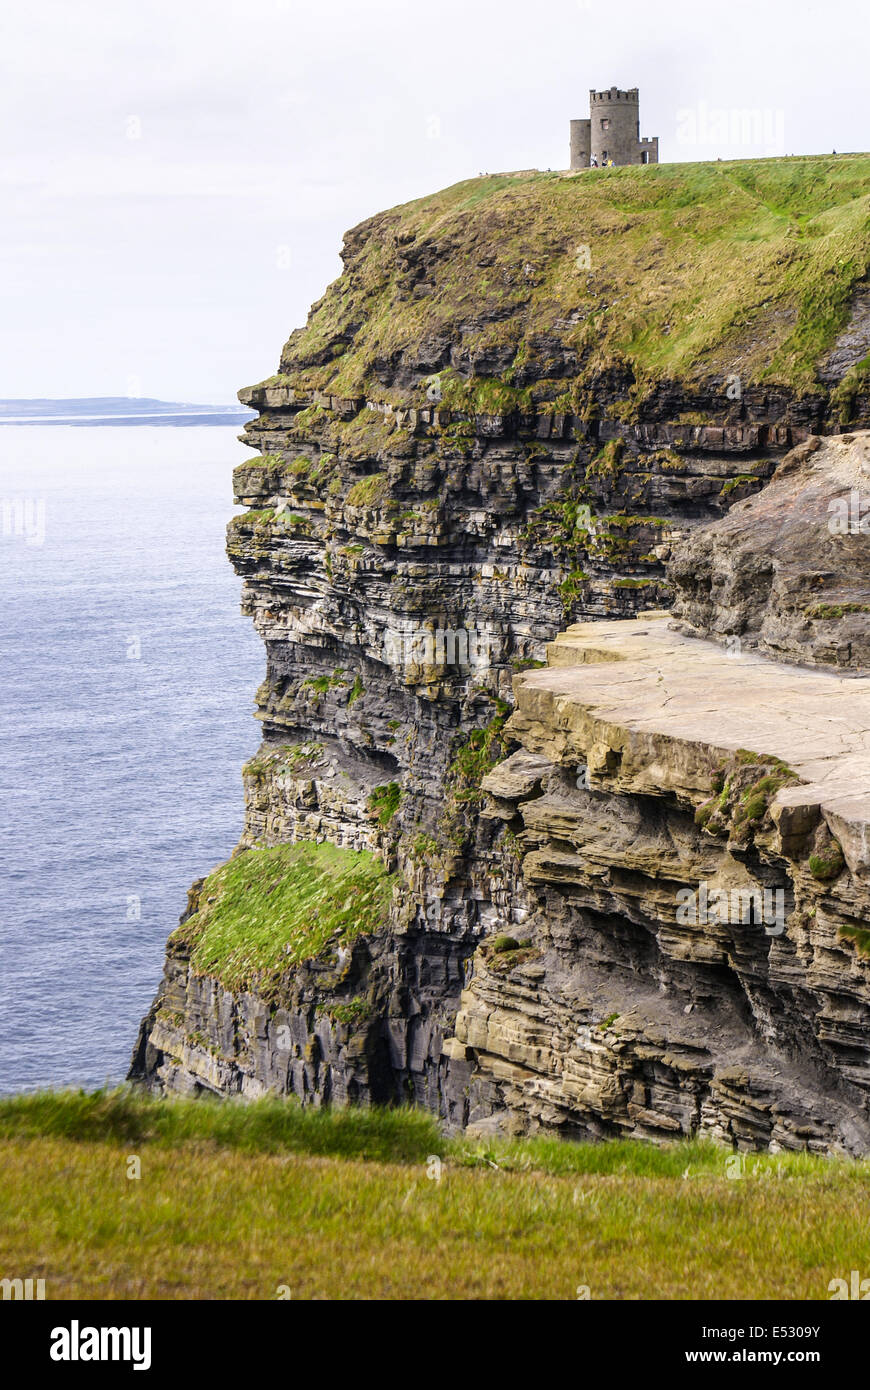 Famous cliffs of Moher with tower. Ireland - Stock Image